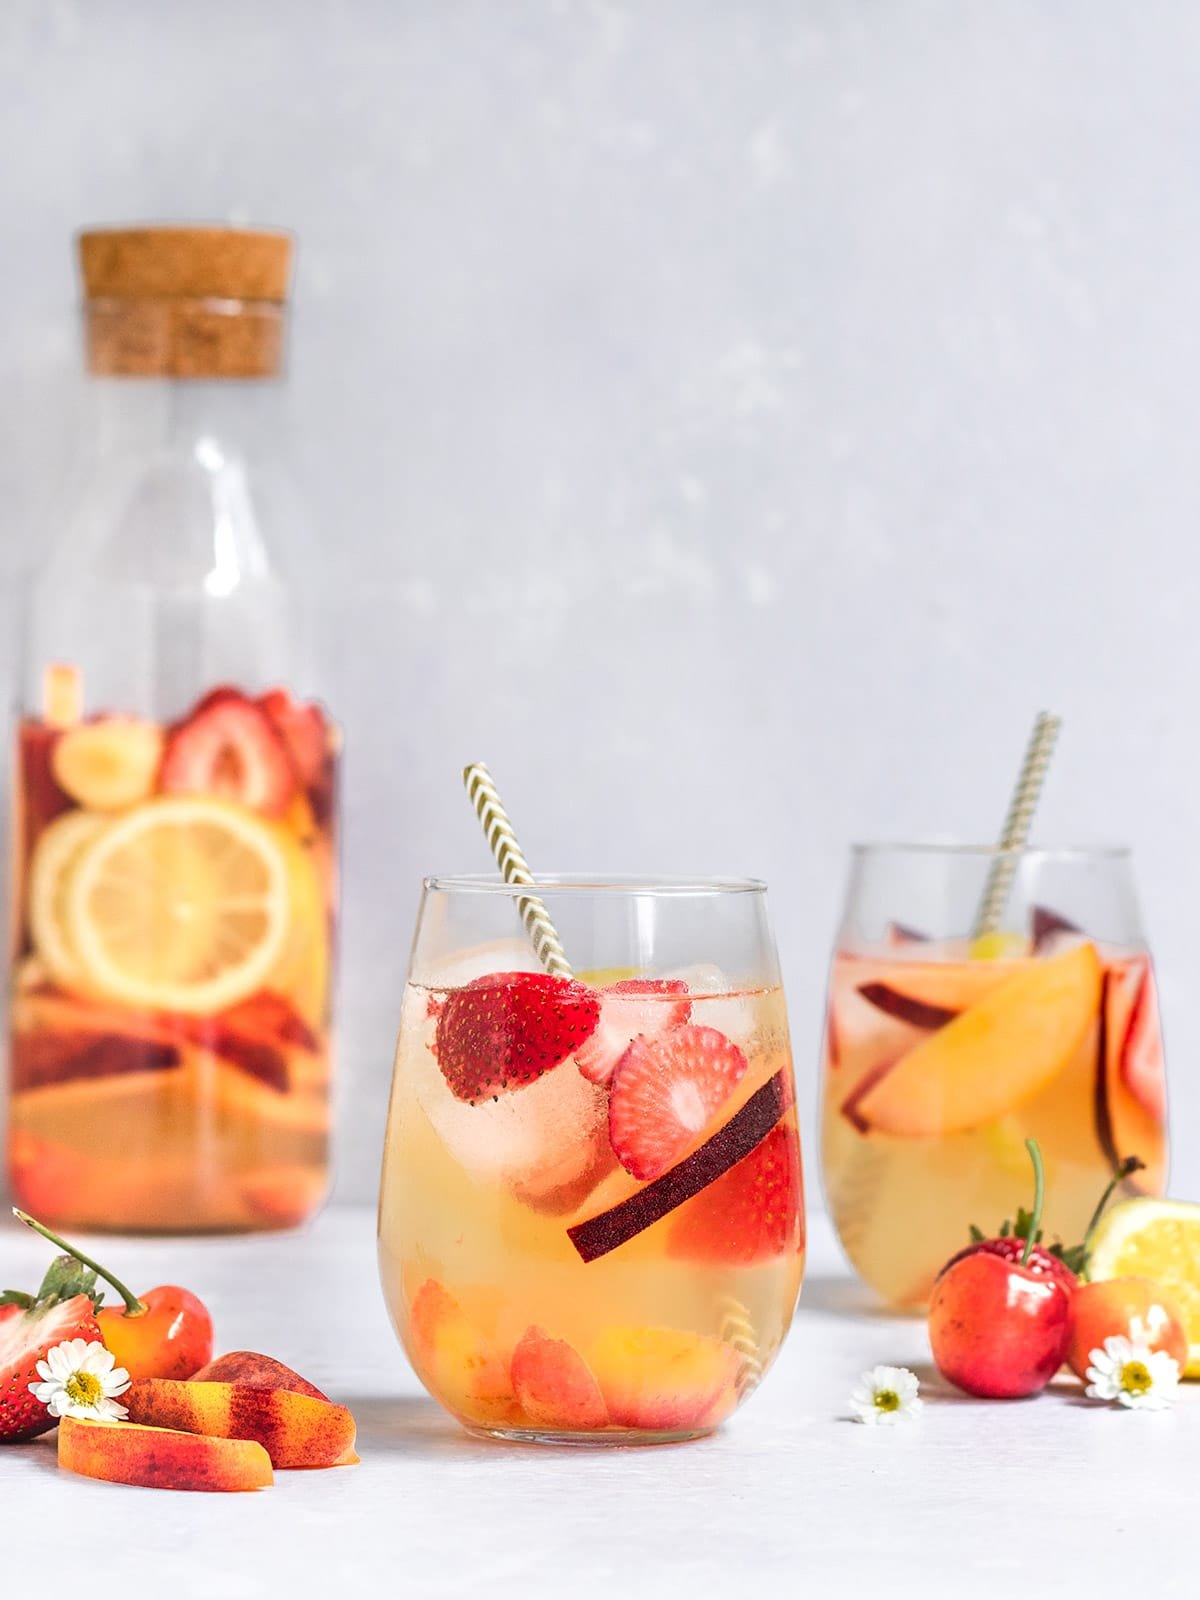 two glasses and a pitcher filled with white wine sangria, cherries, strawberries, peach slices, and lemon slices